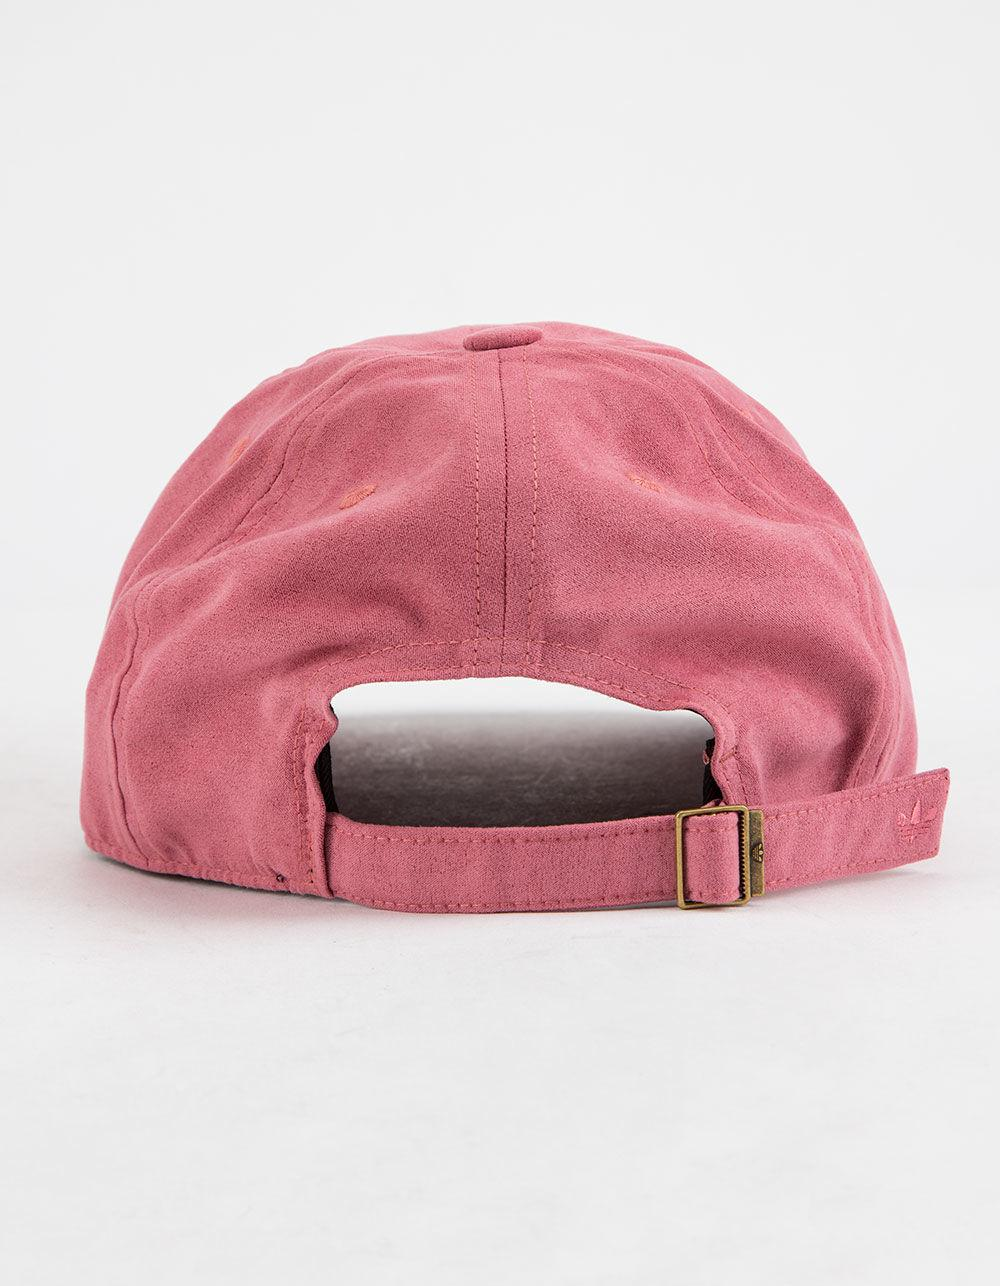 Lyst - adidas Originals Relaxed Deboss Trace Maroon Womens Strapback Hat in  Pink 6522e9c1e8ea